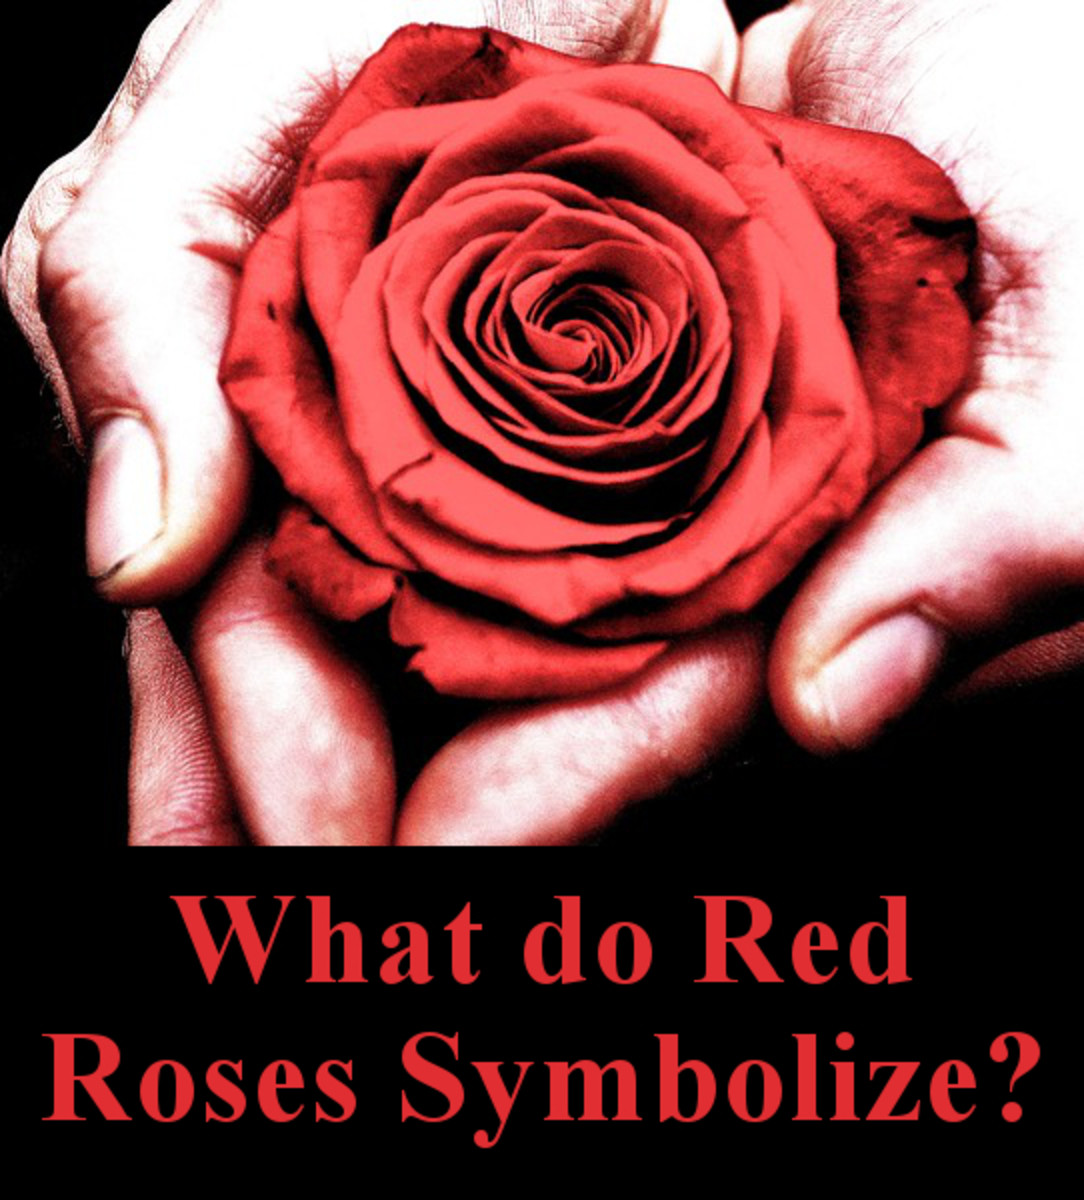 What do red roses symbolize?